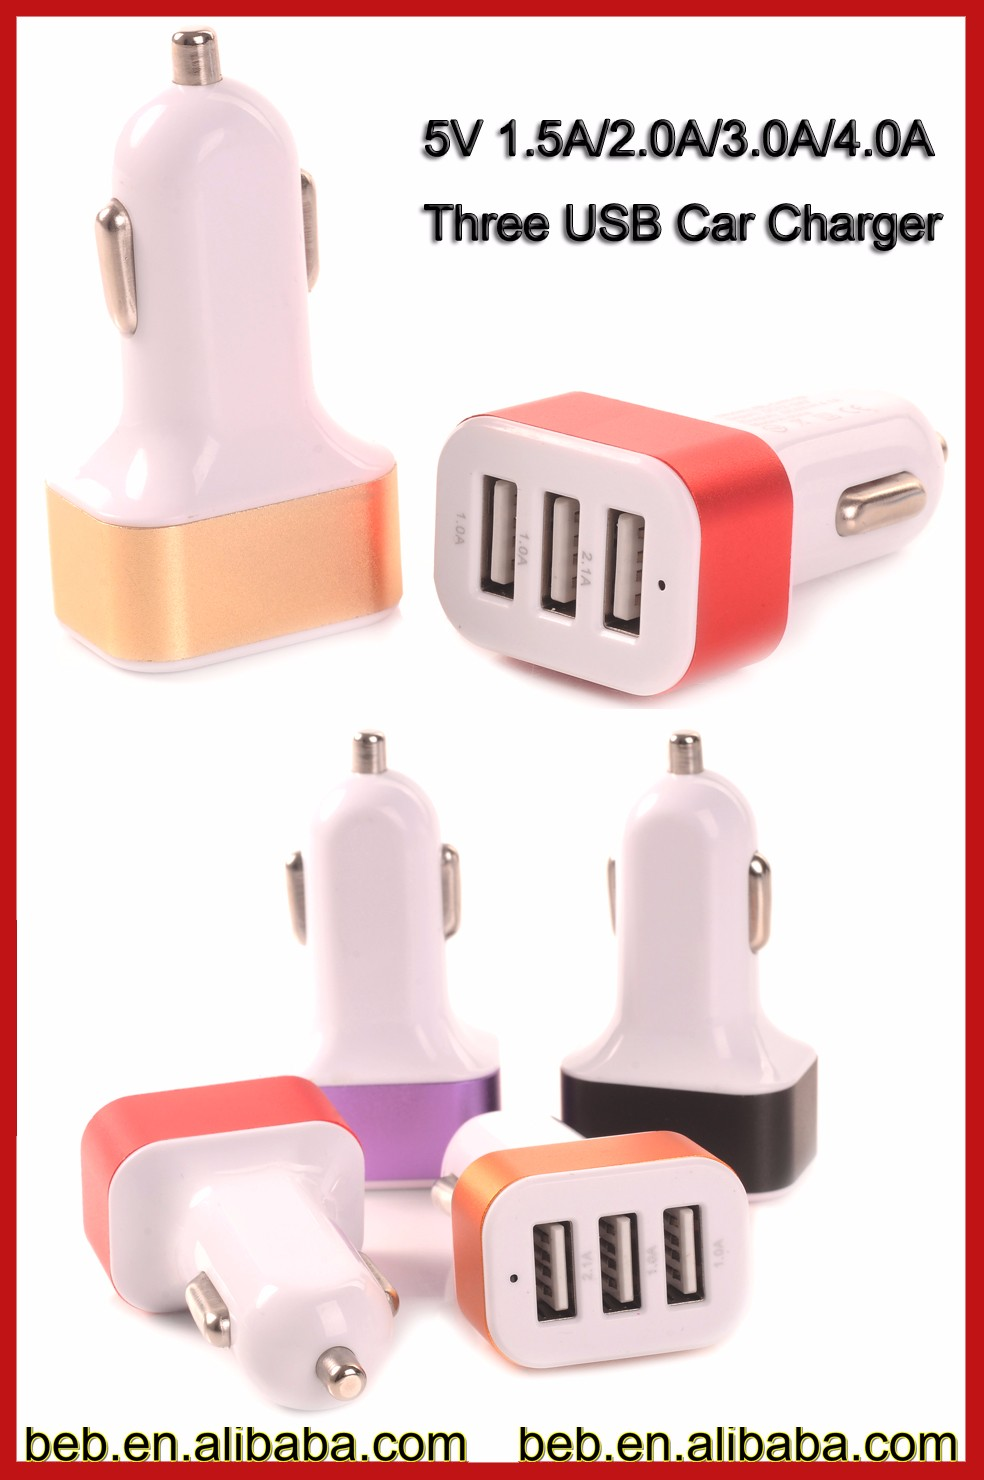 5V 4.1A usb car charger for iphone 6 plus